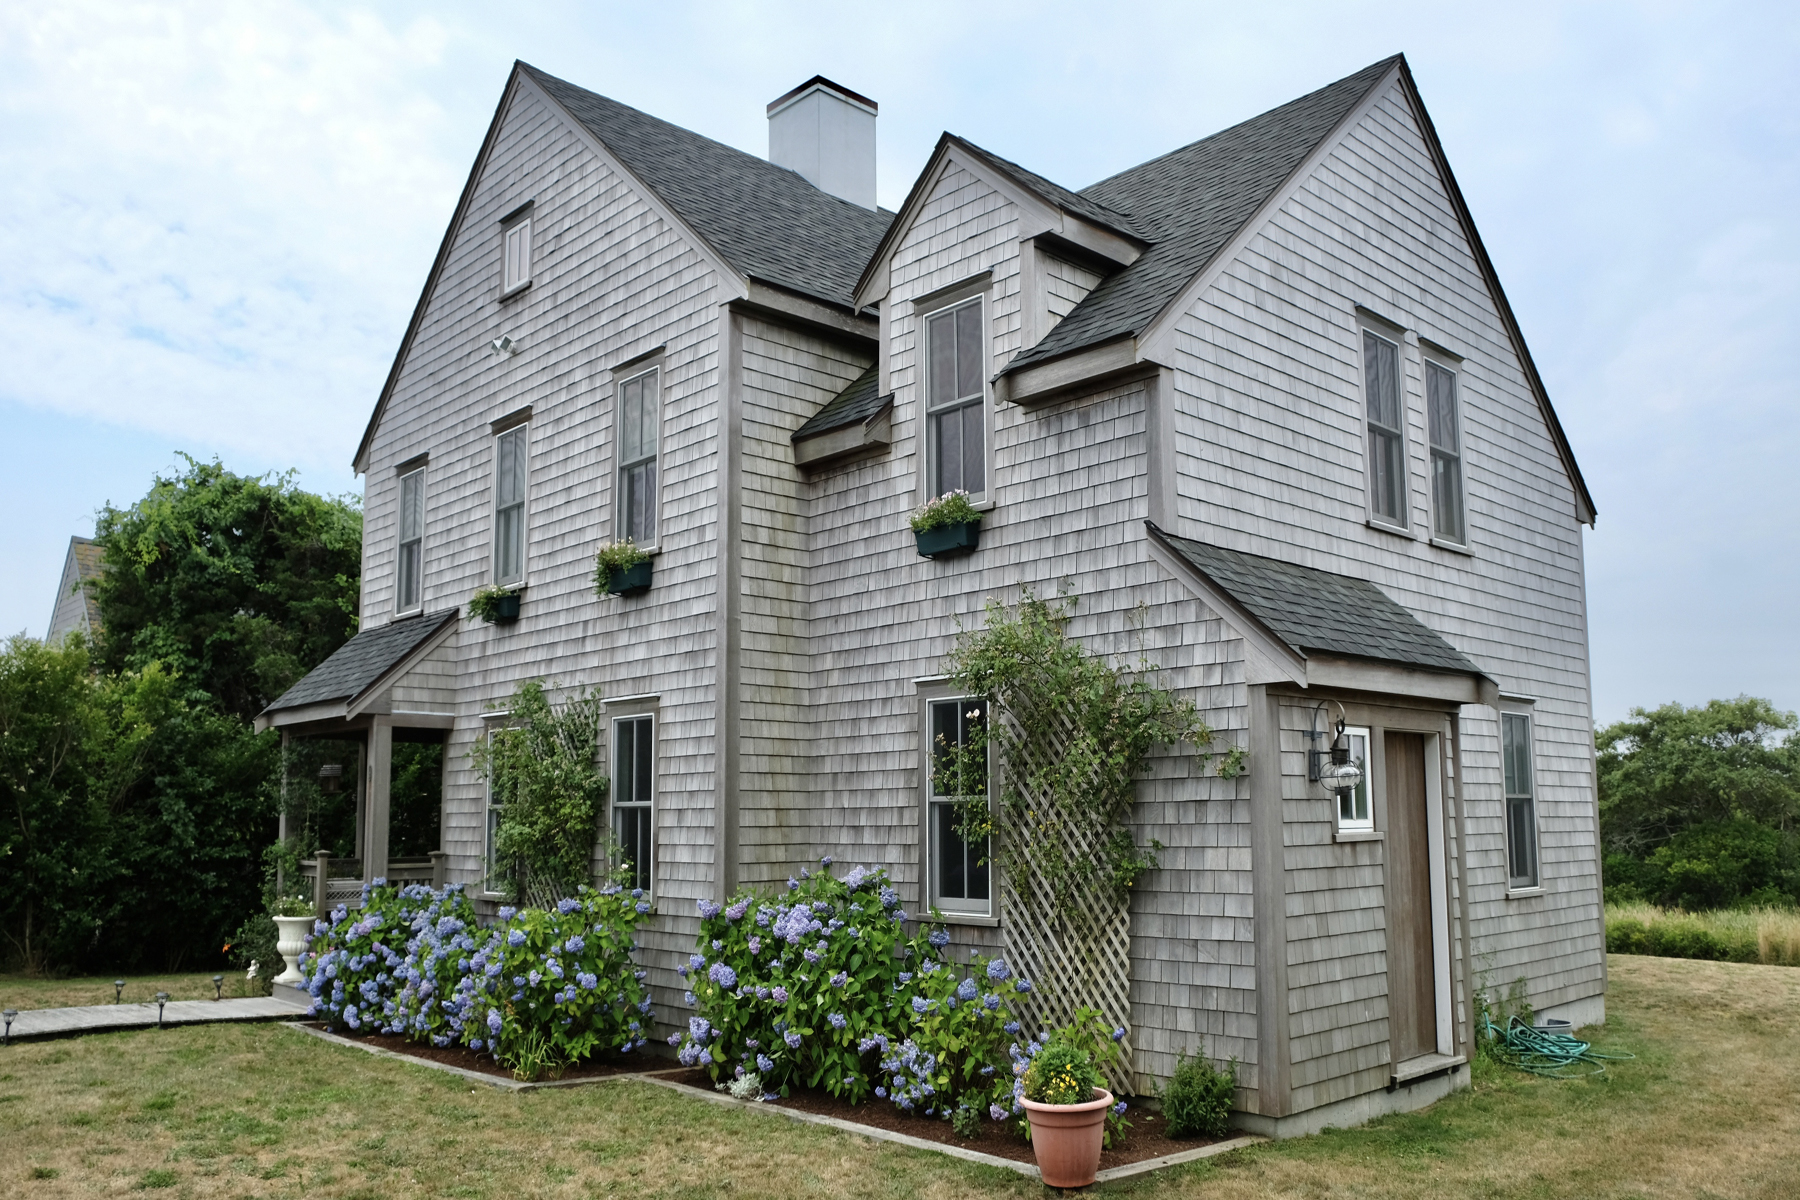 Single Family Home for Active at Tucked Away 9 Meeting House Lane Siasconset, Massachusetts 02564 United States